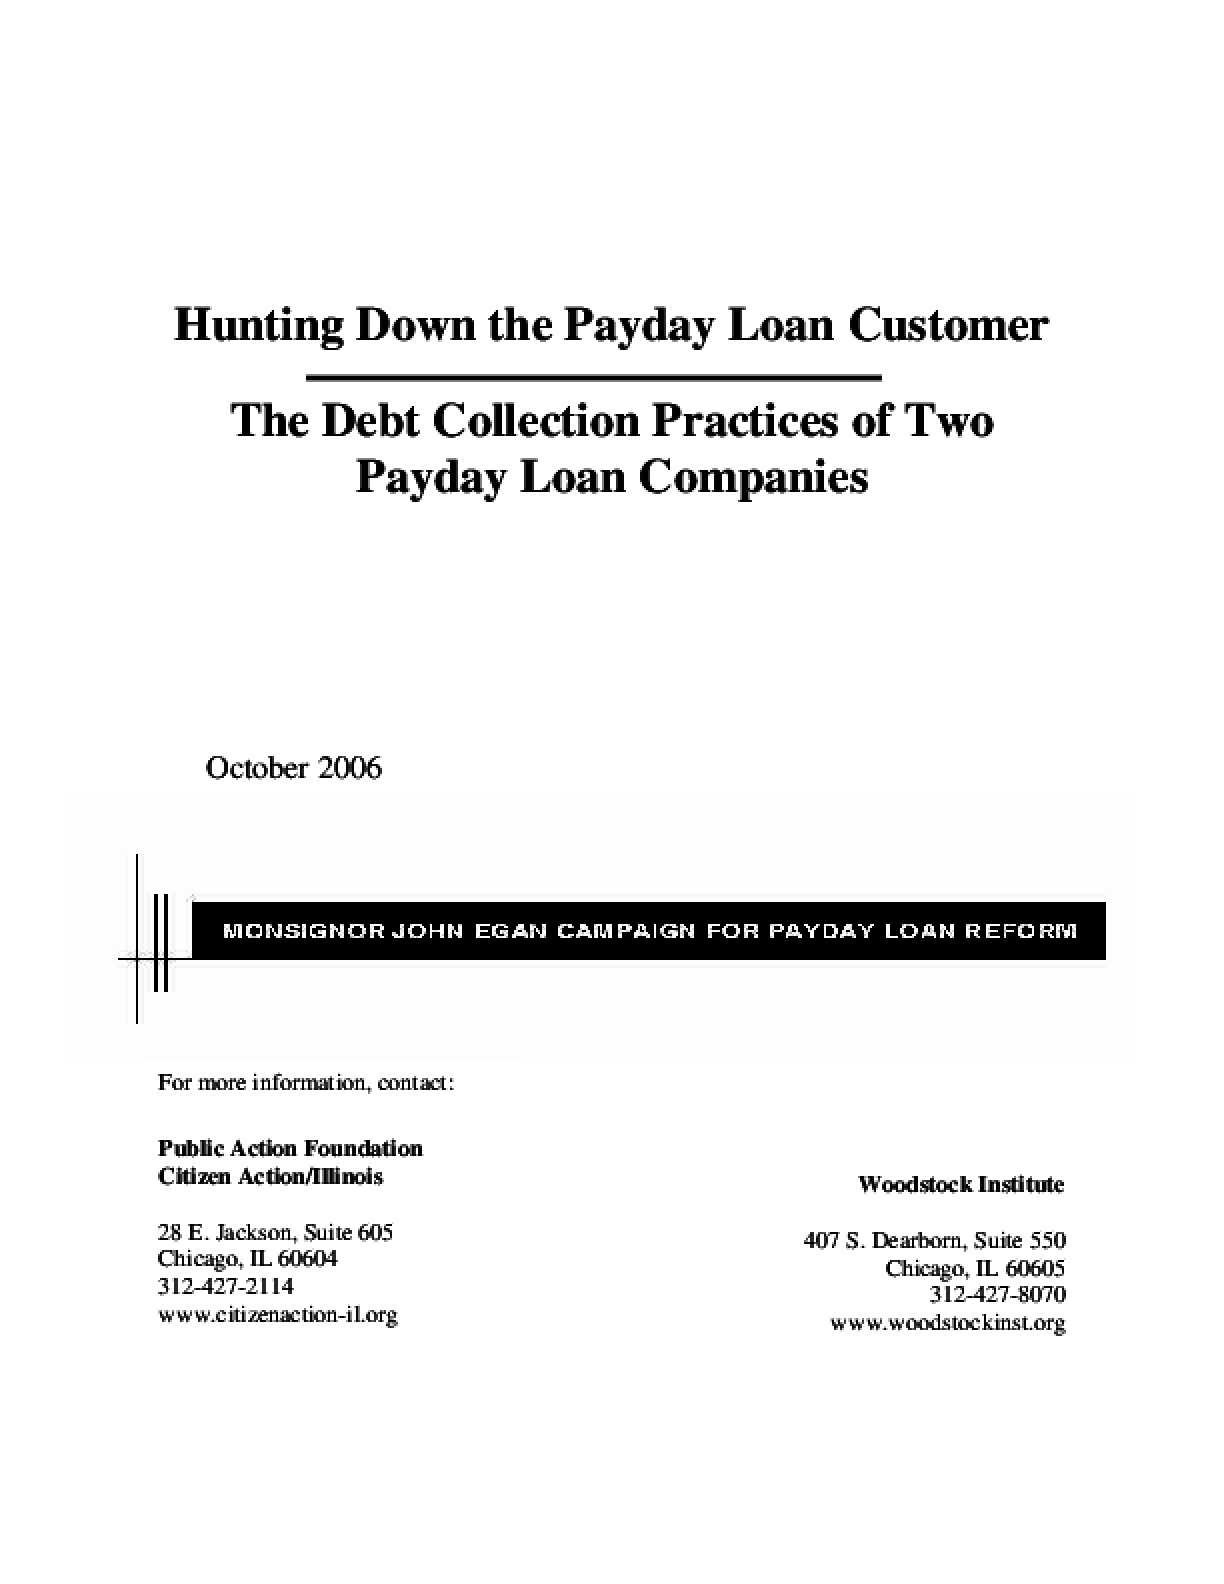 Hunting Down the Payday Loan Customer: The Debt Collection Practices of Two Payday Loan Companies